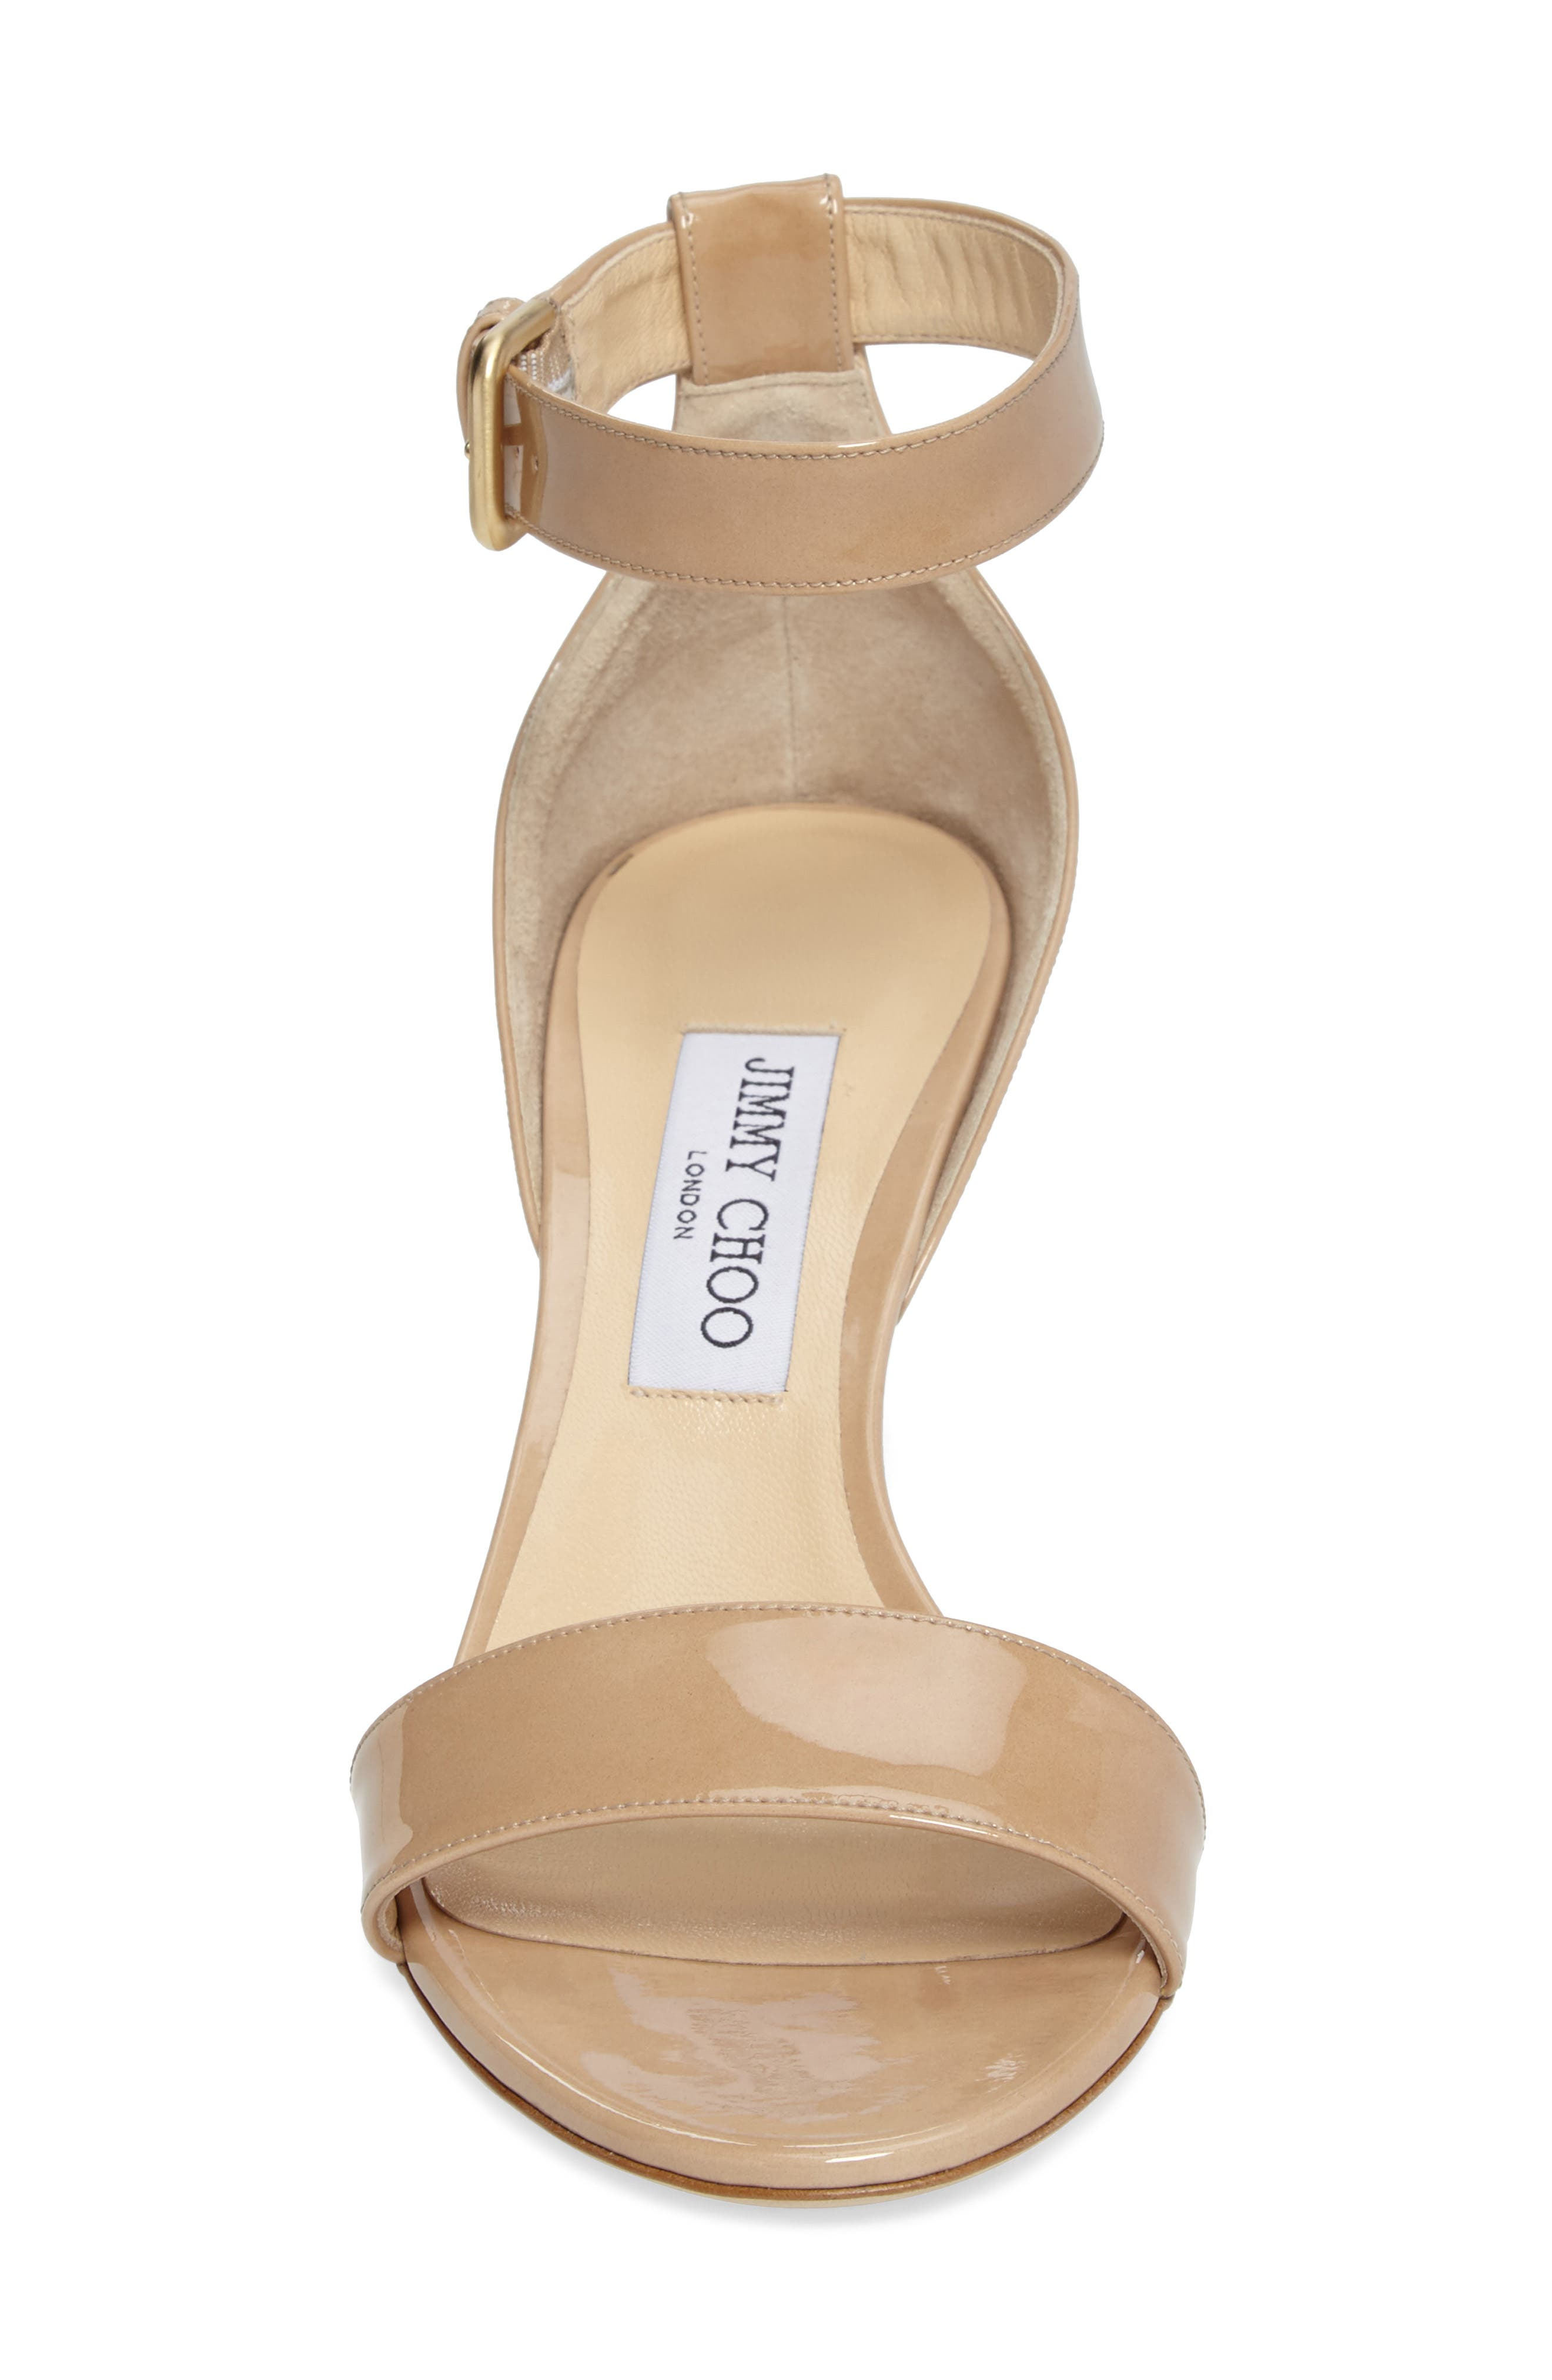 Edina Ankle Strap Sandal,                             Alternate thumbnail 4, color,                             NUDE PATENT